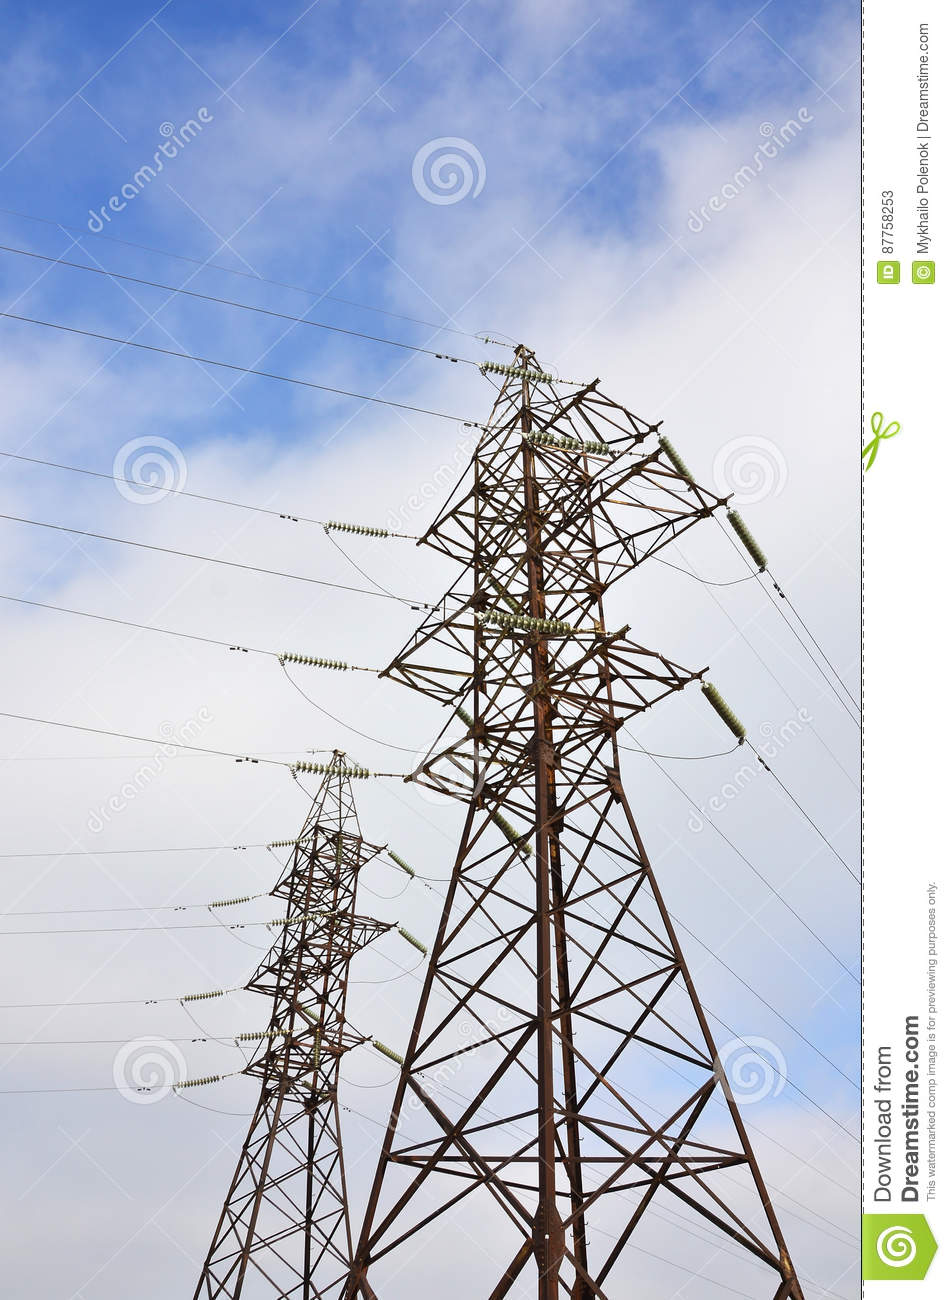 electric power generation transmission and distribution pdf free download